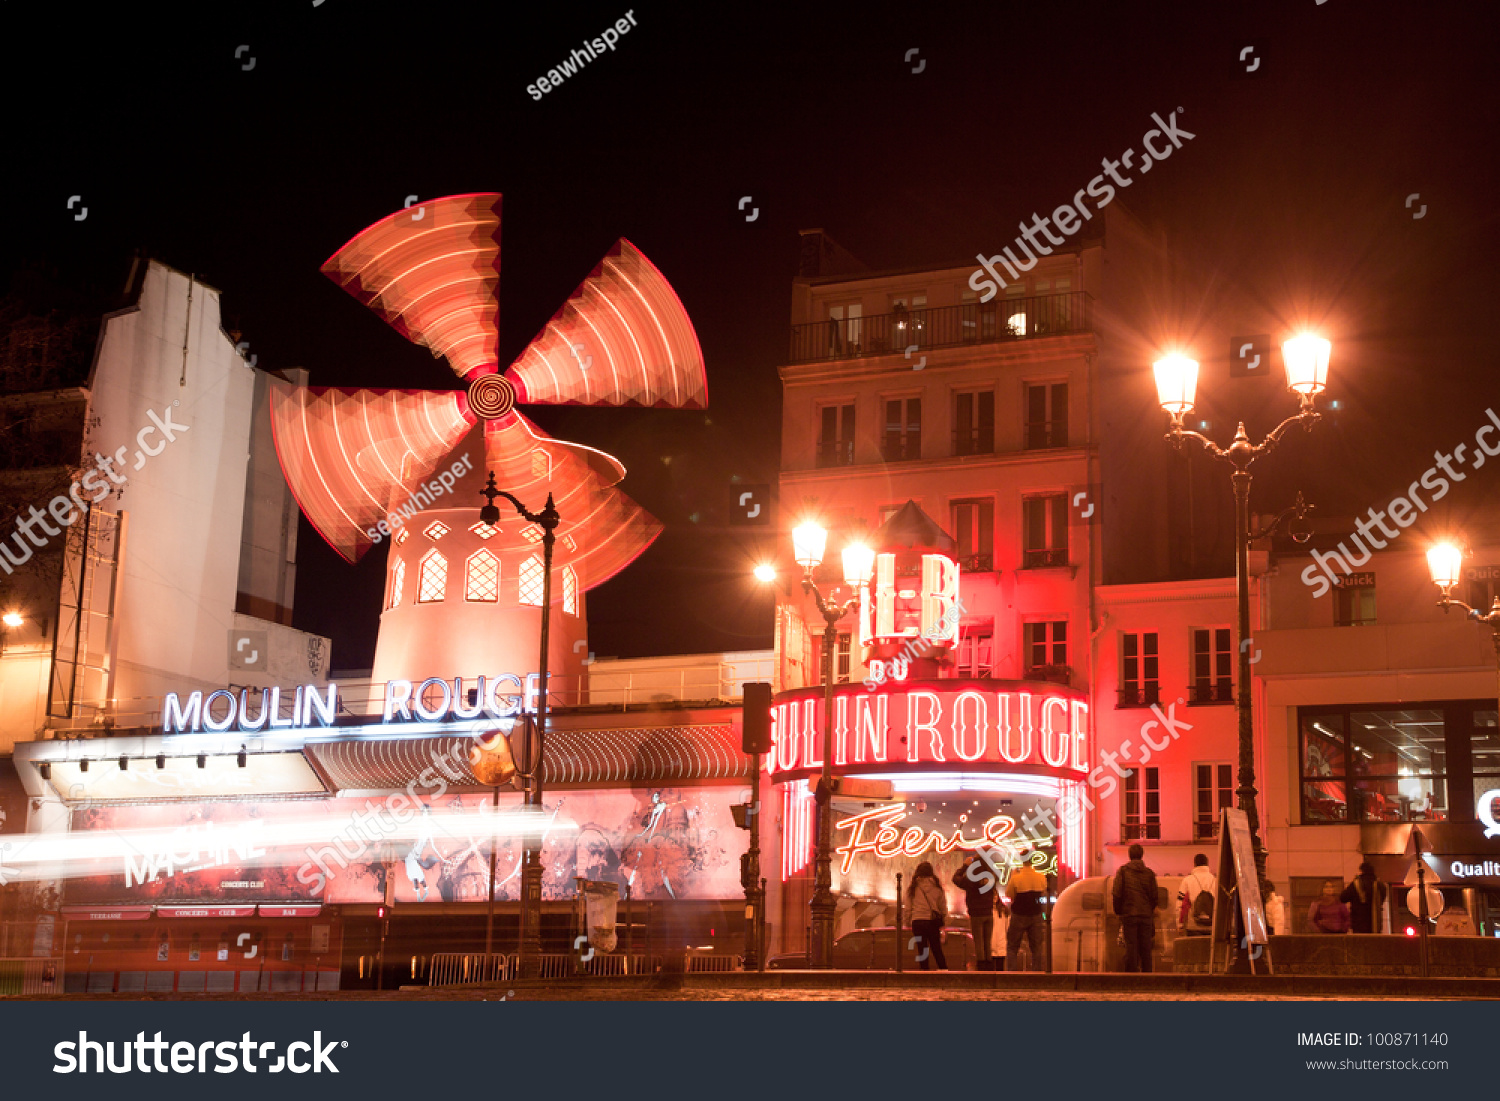 paris march 6 the moulin rouge at night on march 6 2012 in paris france moulin rouge is a. Black Bedroom Furniture Sets. Home Design Ideas